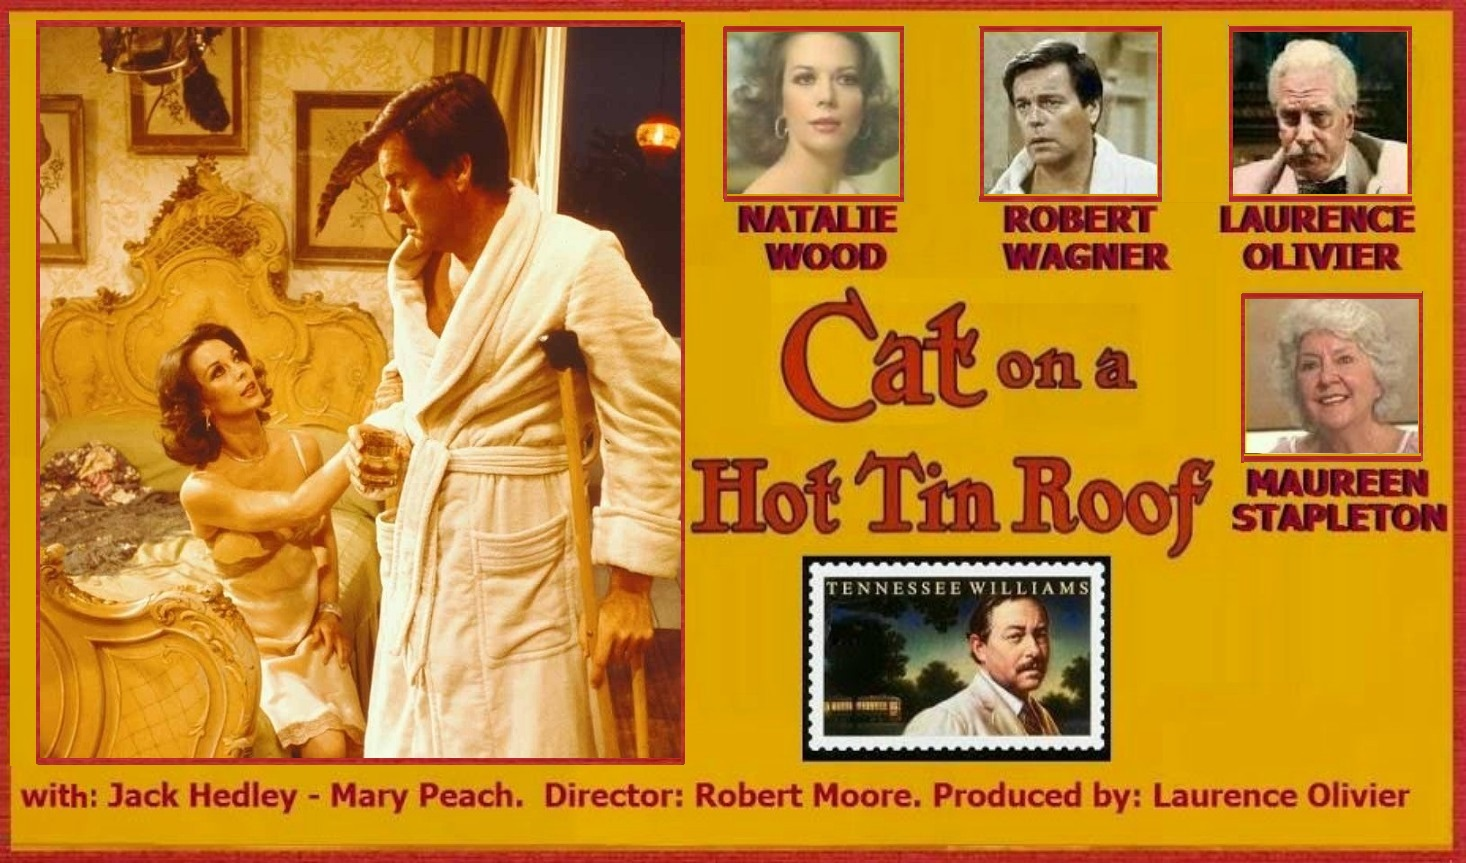 CAT ON A HOT TIN ROOF (1976) WEB SITE